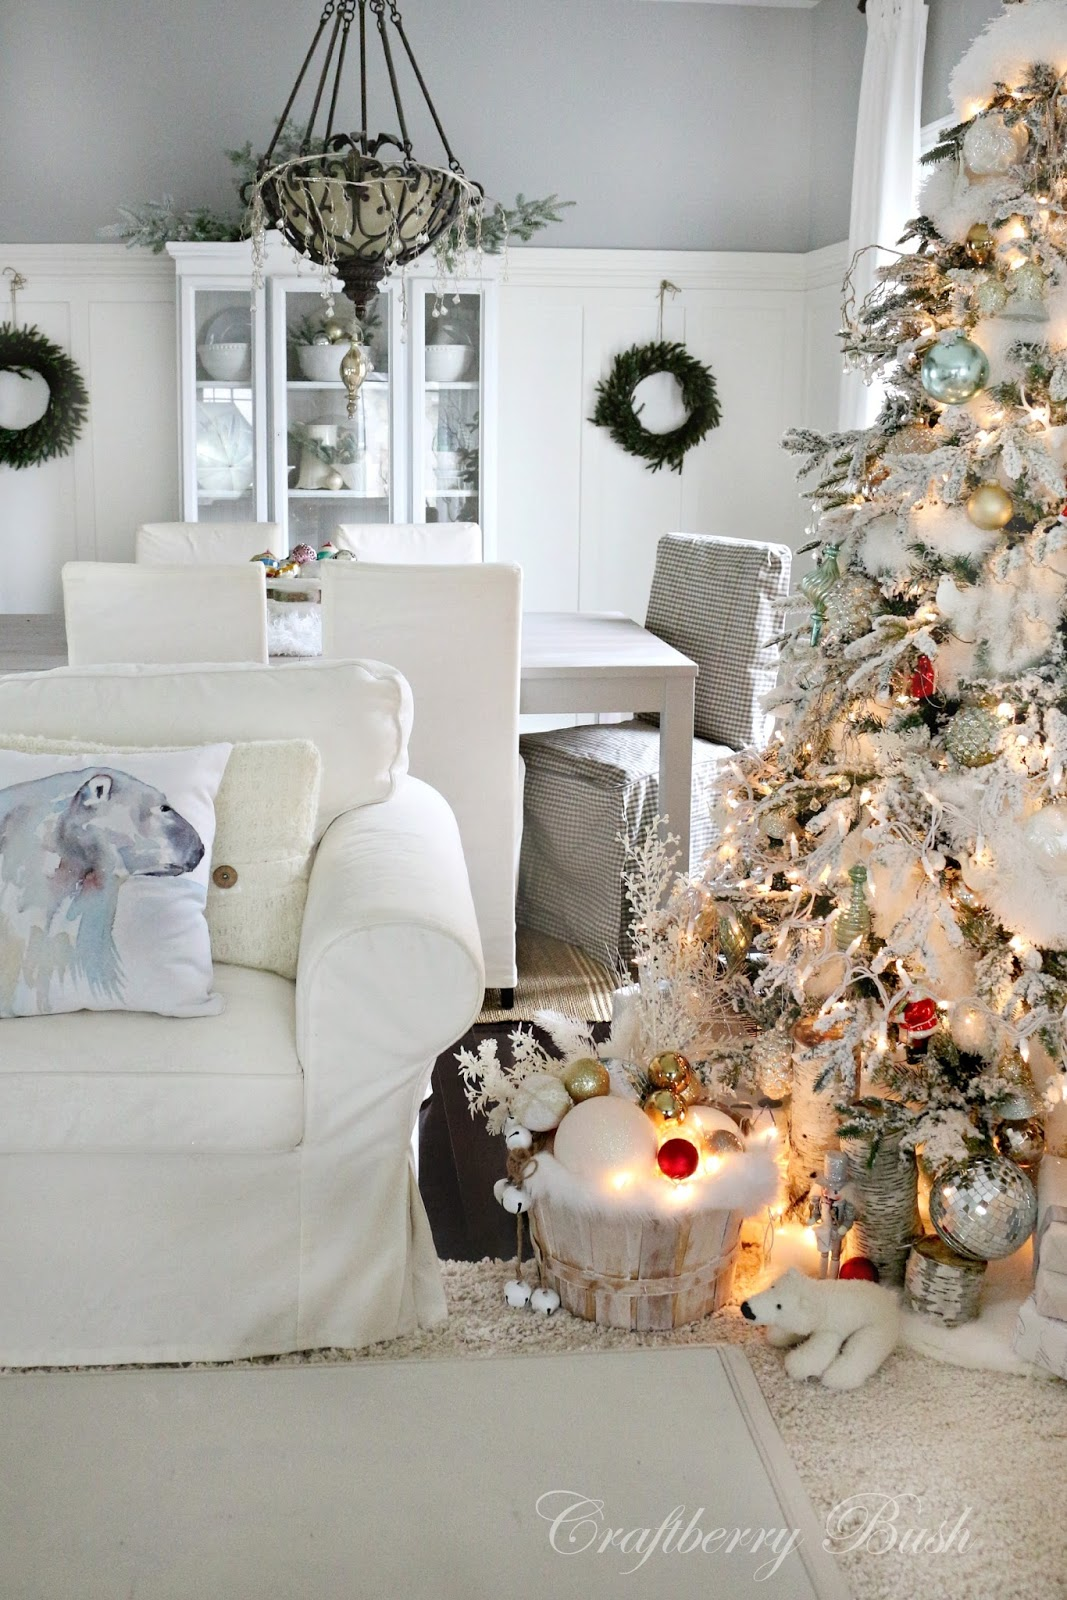 Christmas home decor ideas the 36th avenue for Ideas for decorating my home for christmas